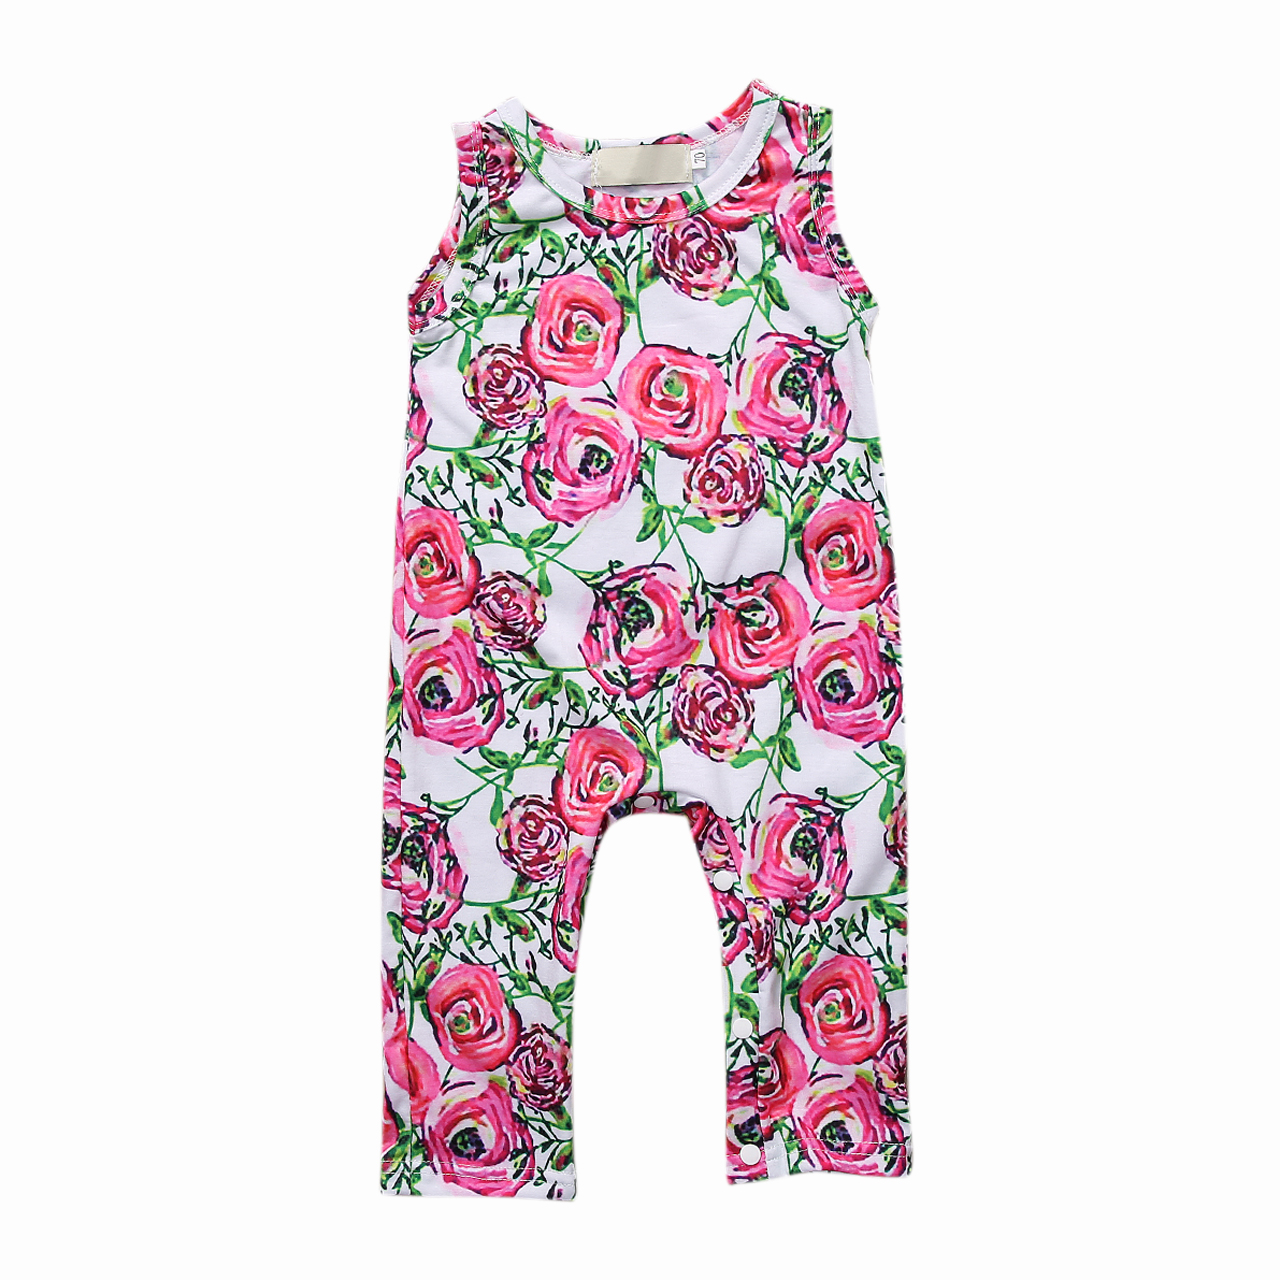 Pudcoco Toddler Newborn Baby Girl Clothes Cotton Sleeveless Pullover Rose Floral Romper Outfits 0-3Years Helen115